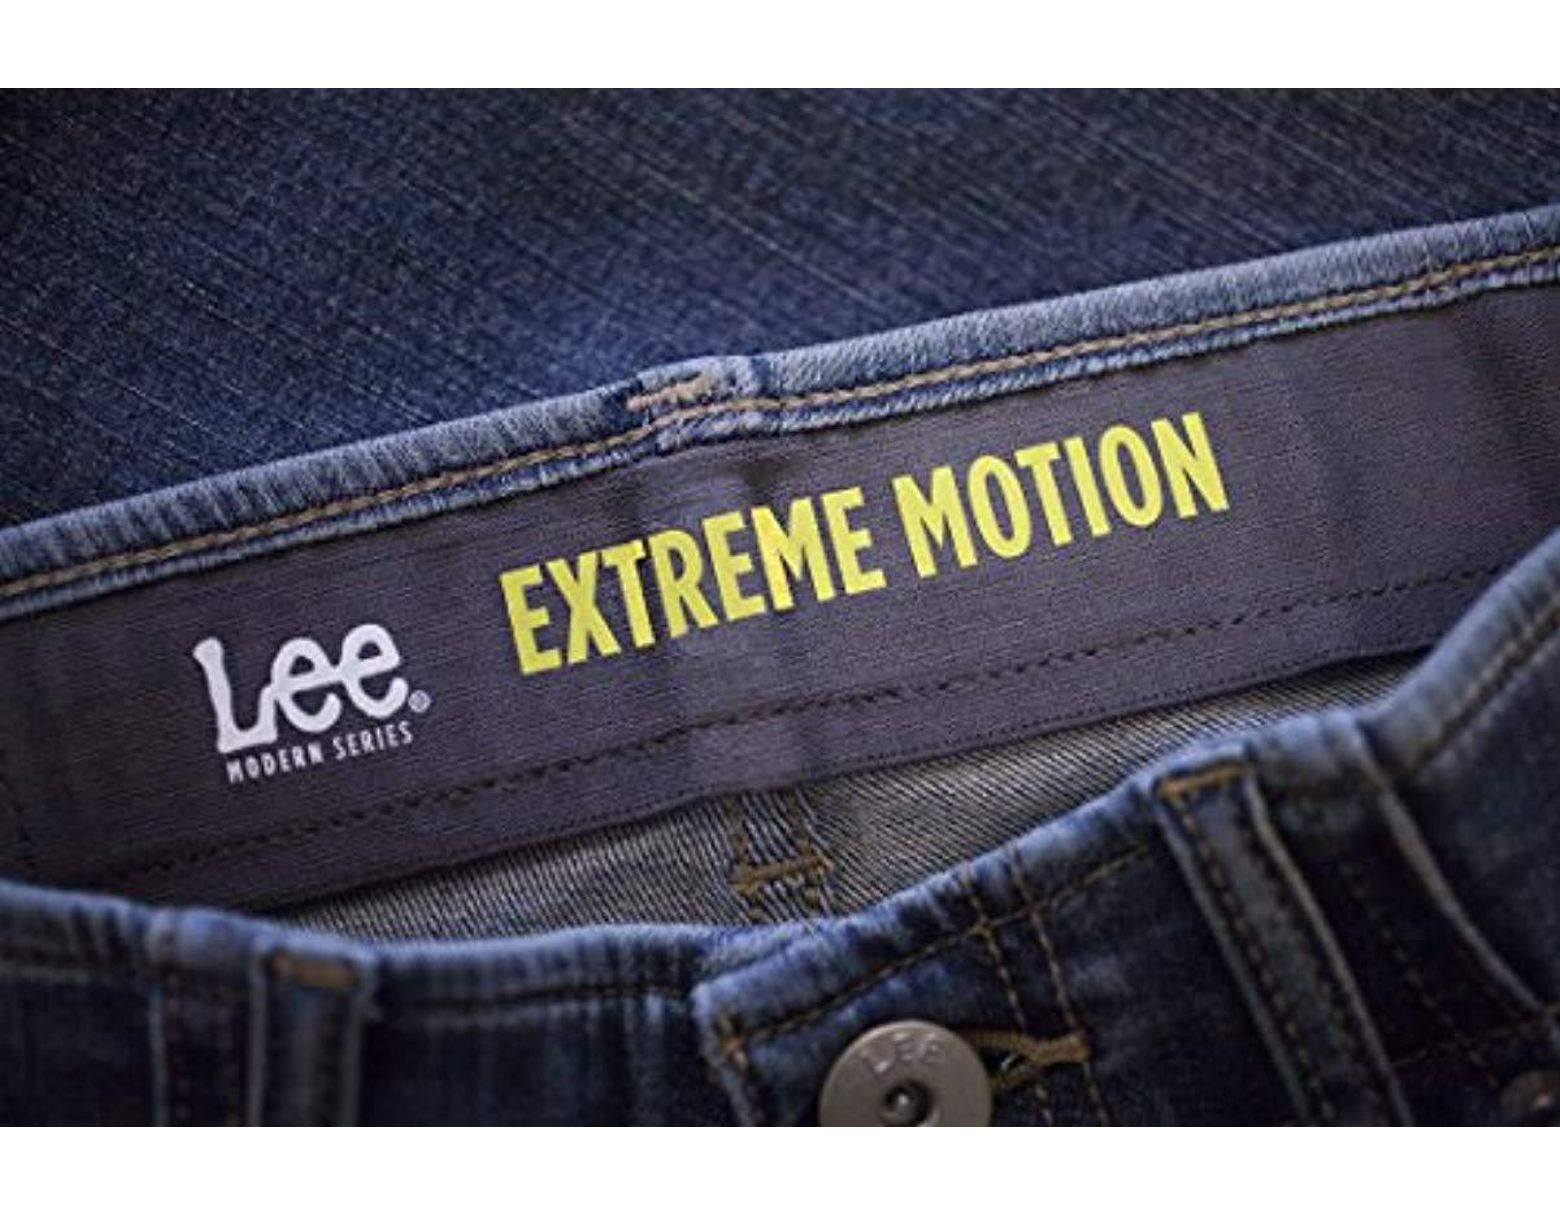 b841540e Lee Jeans Modern Series Extreme Motion Straight Fit Tapered Leg Jean for Men  - Save 5% - Lyst